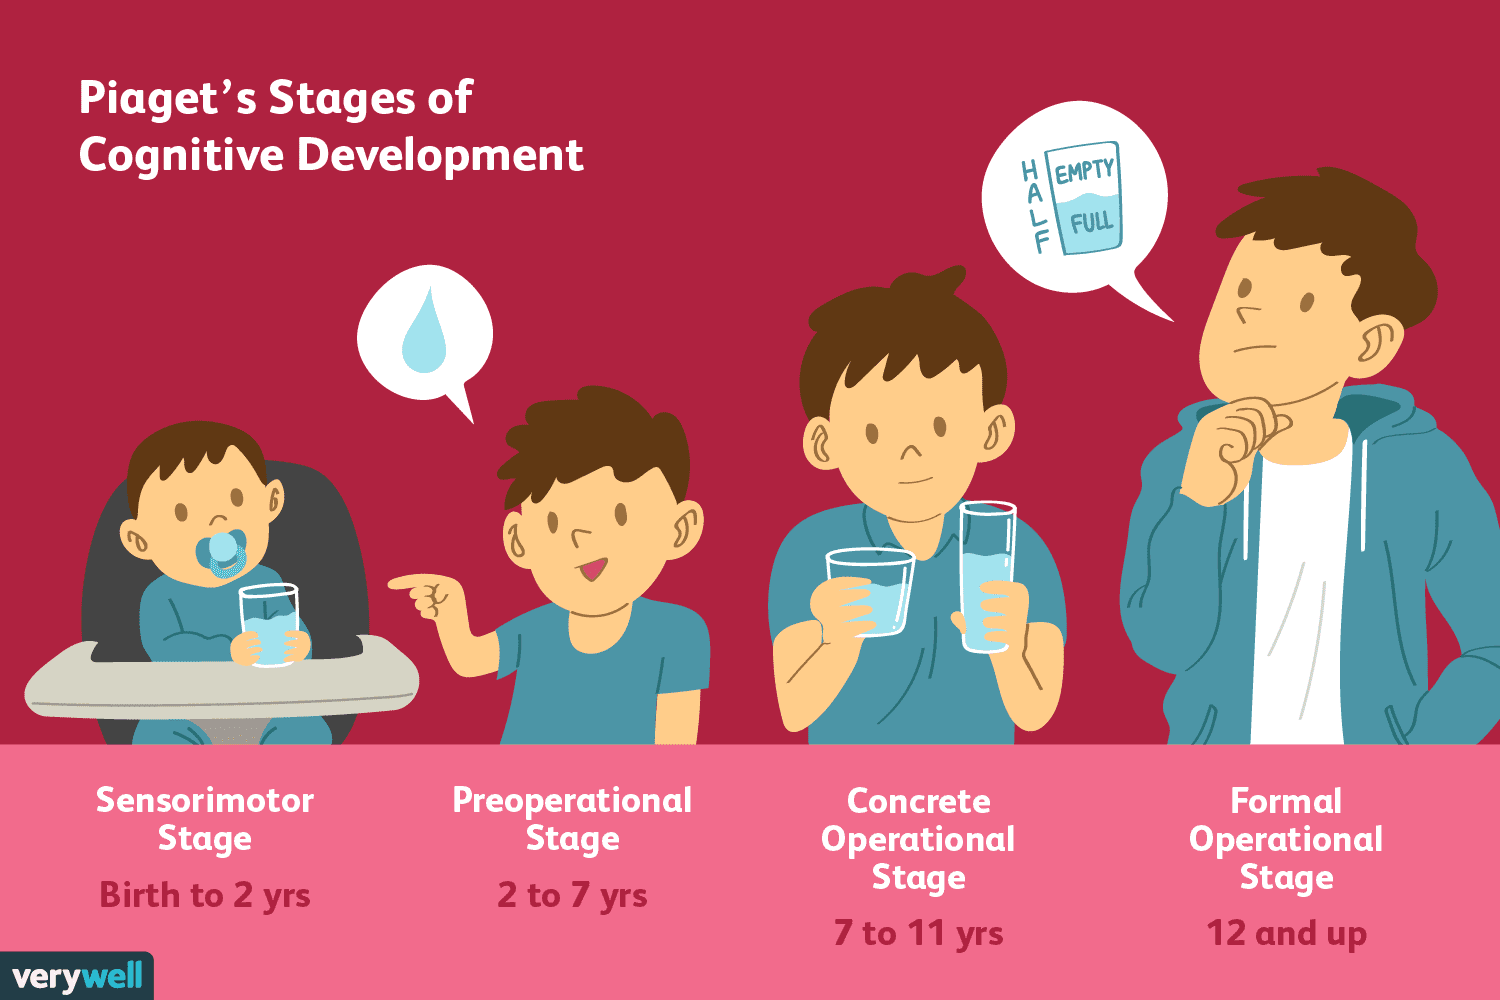 Piaget\'s 4 Stages of Cognitive Development Explained.